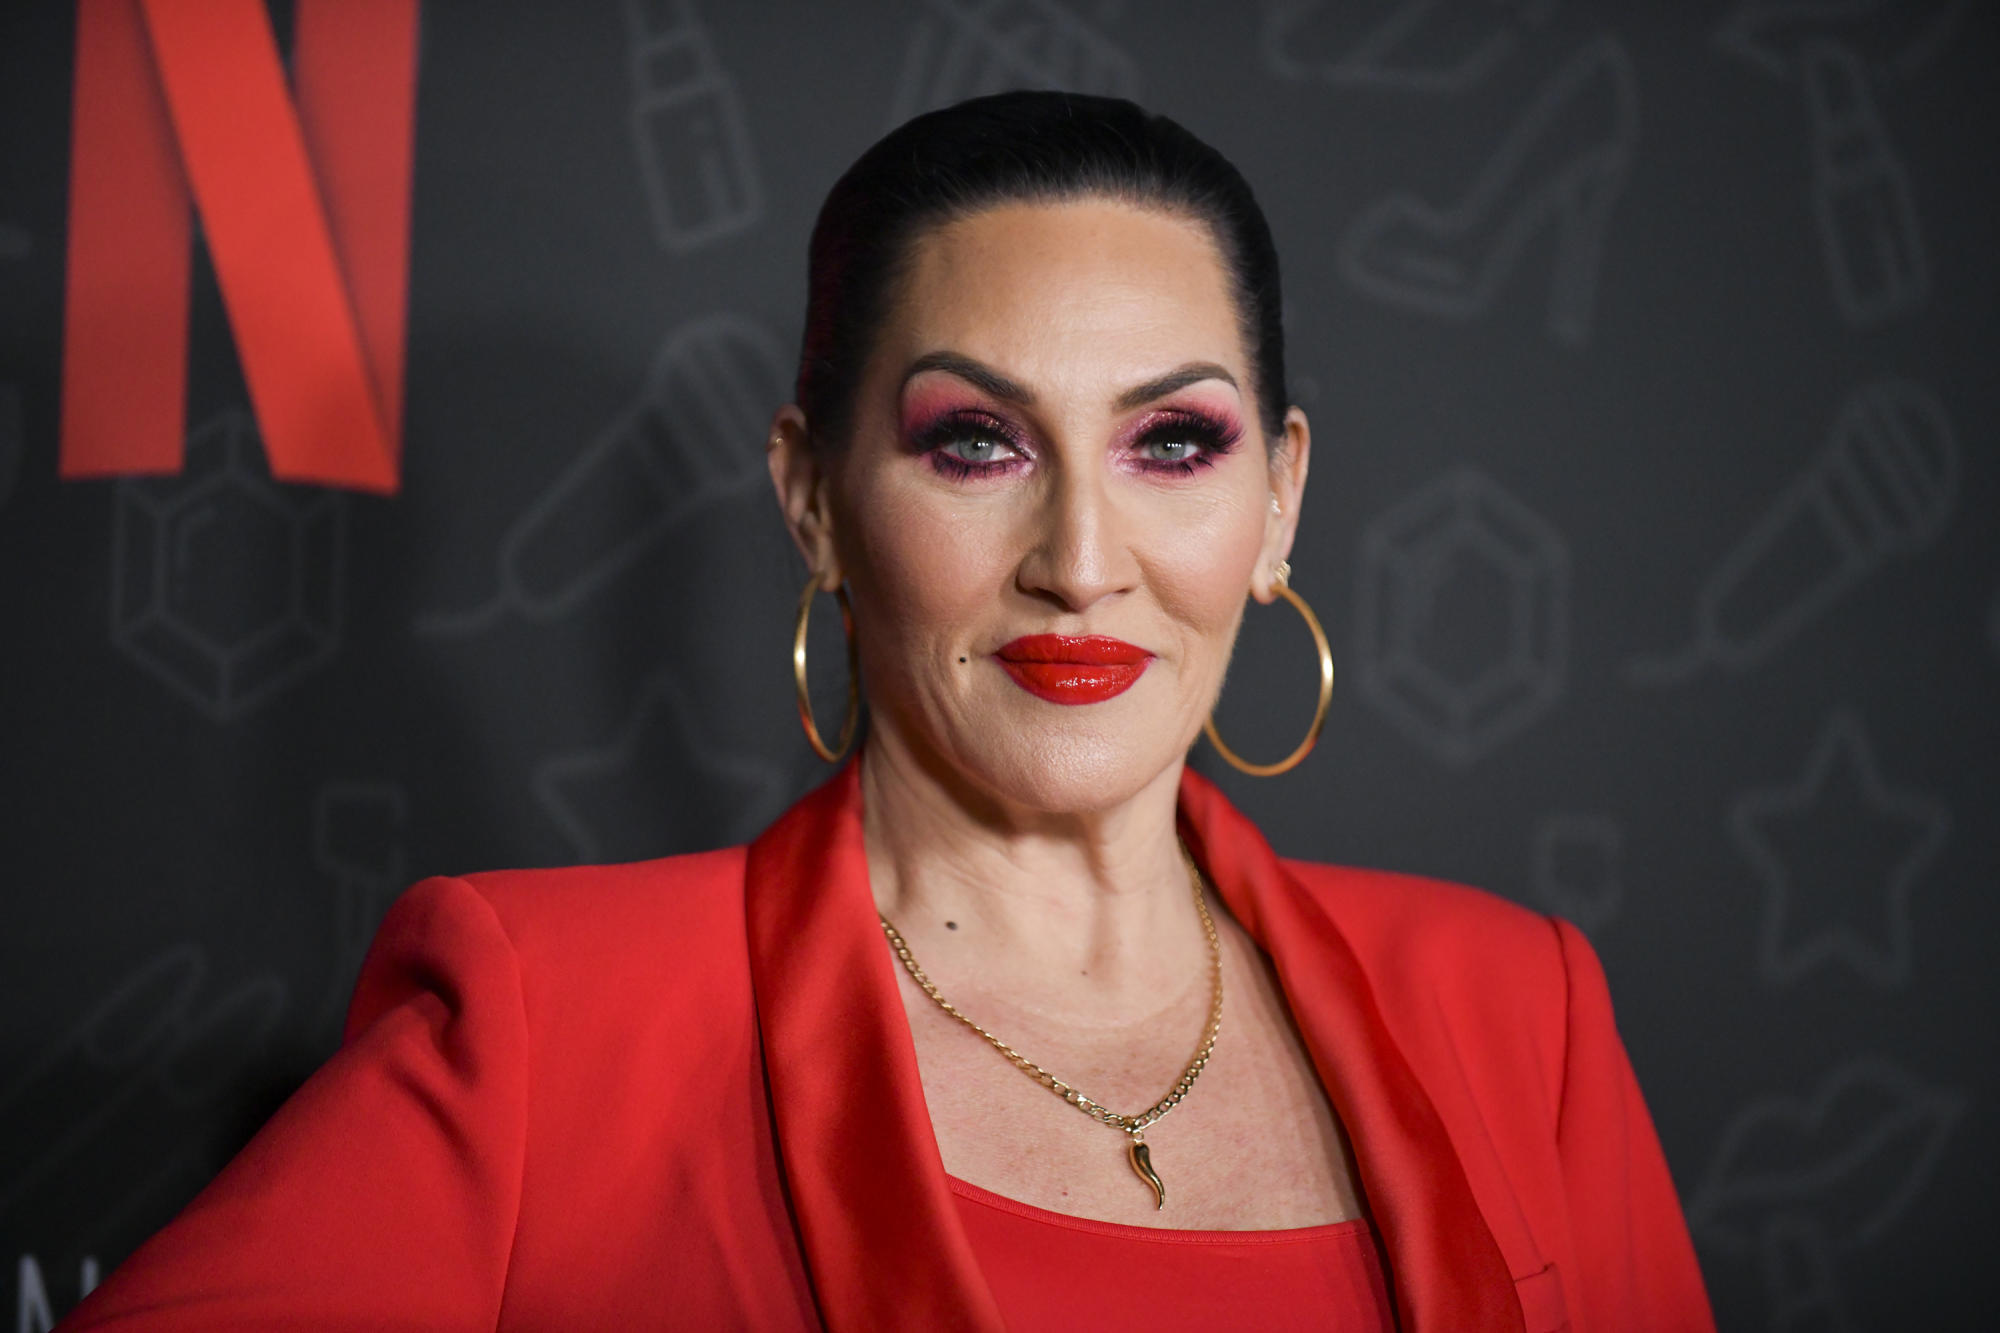 Michelle Visage says fans have called her 'disgusting names' over fluctuating weight